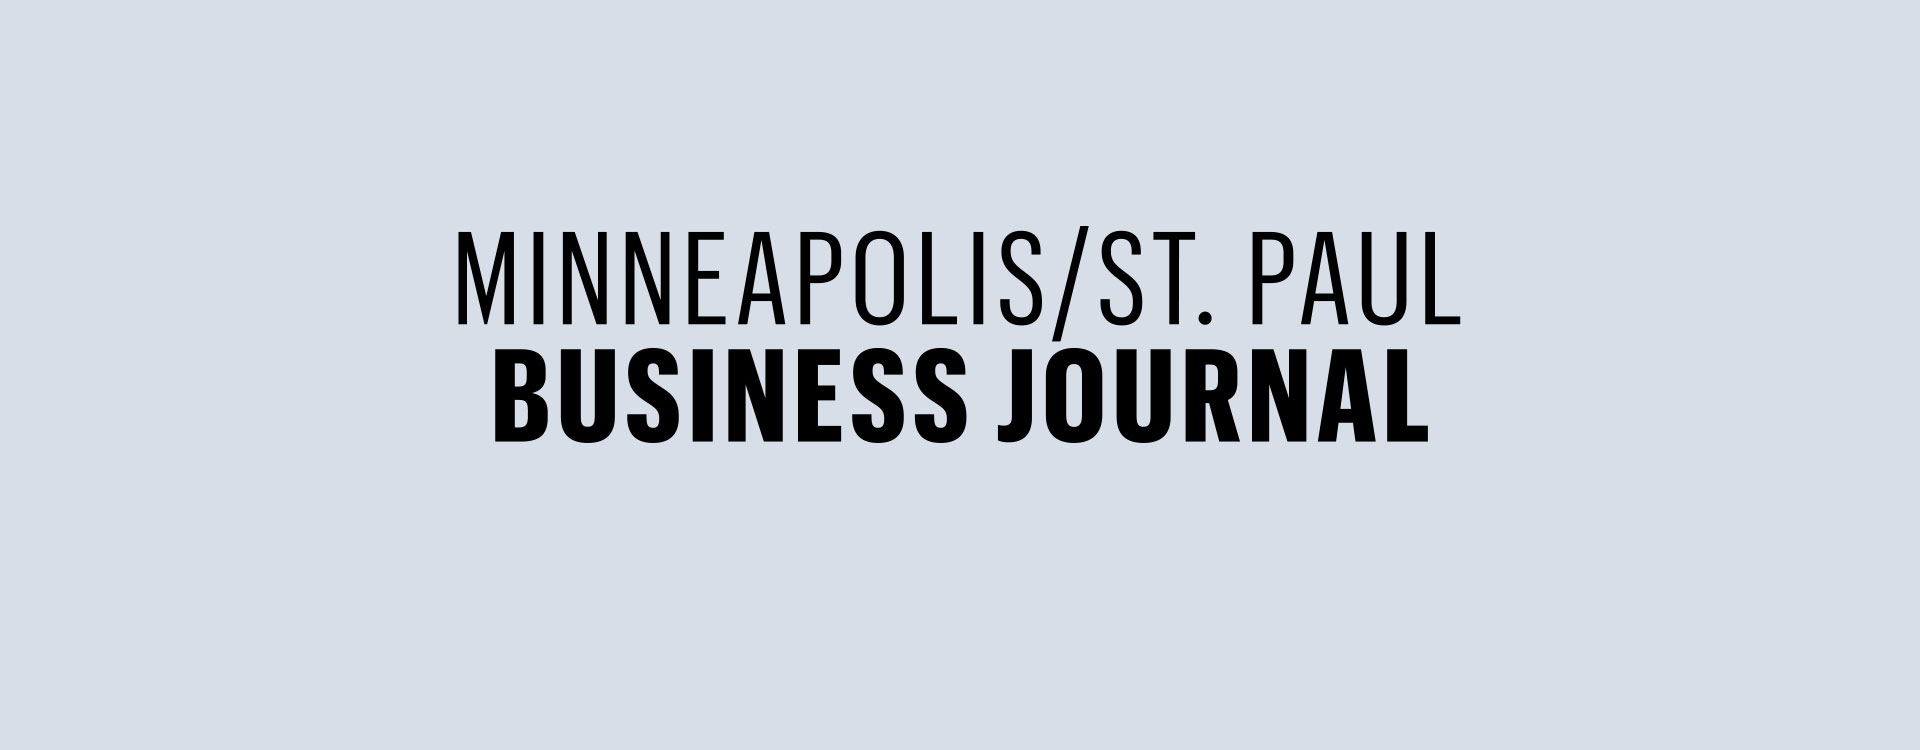 Minneapolis St Paul Business Journal logo